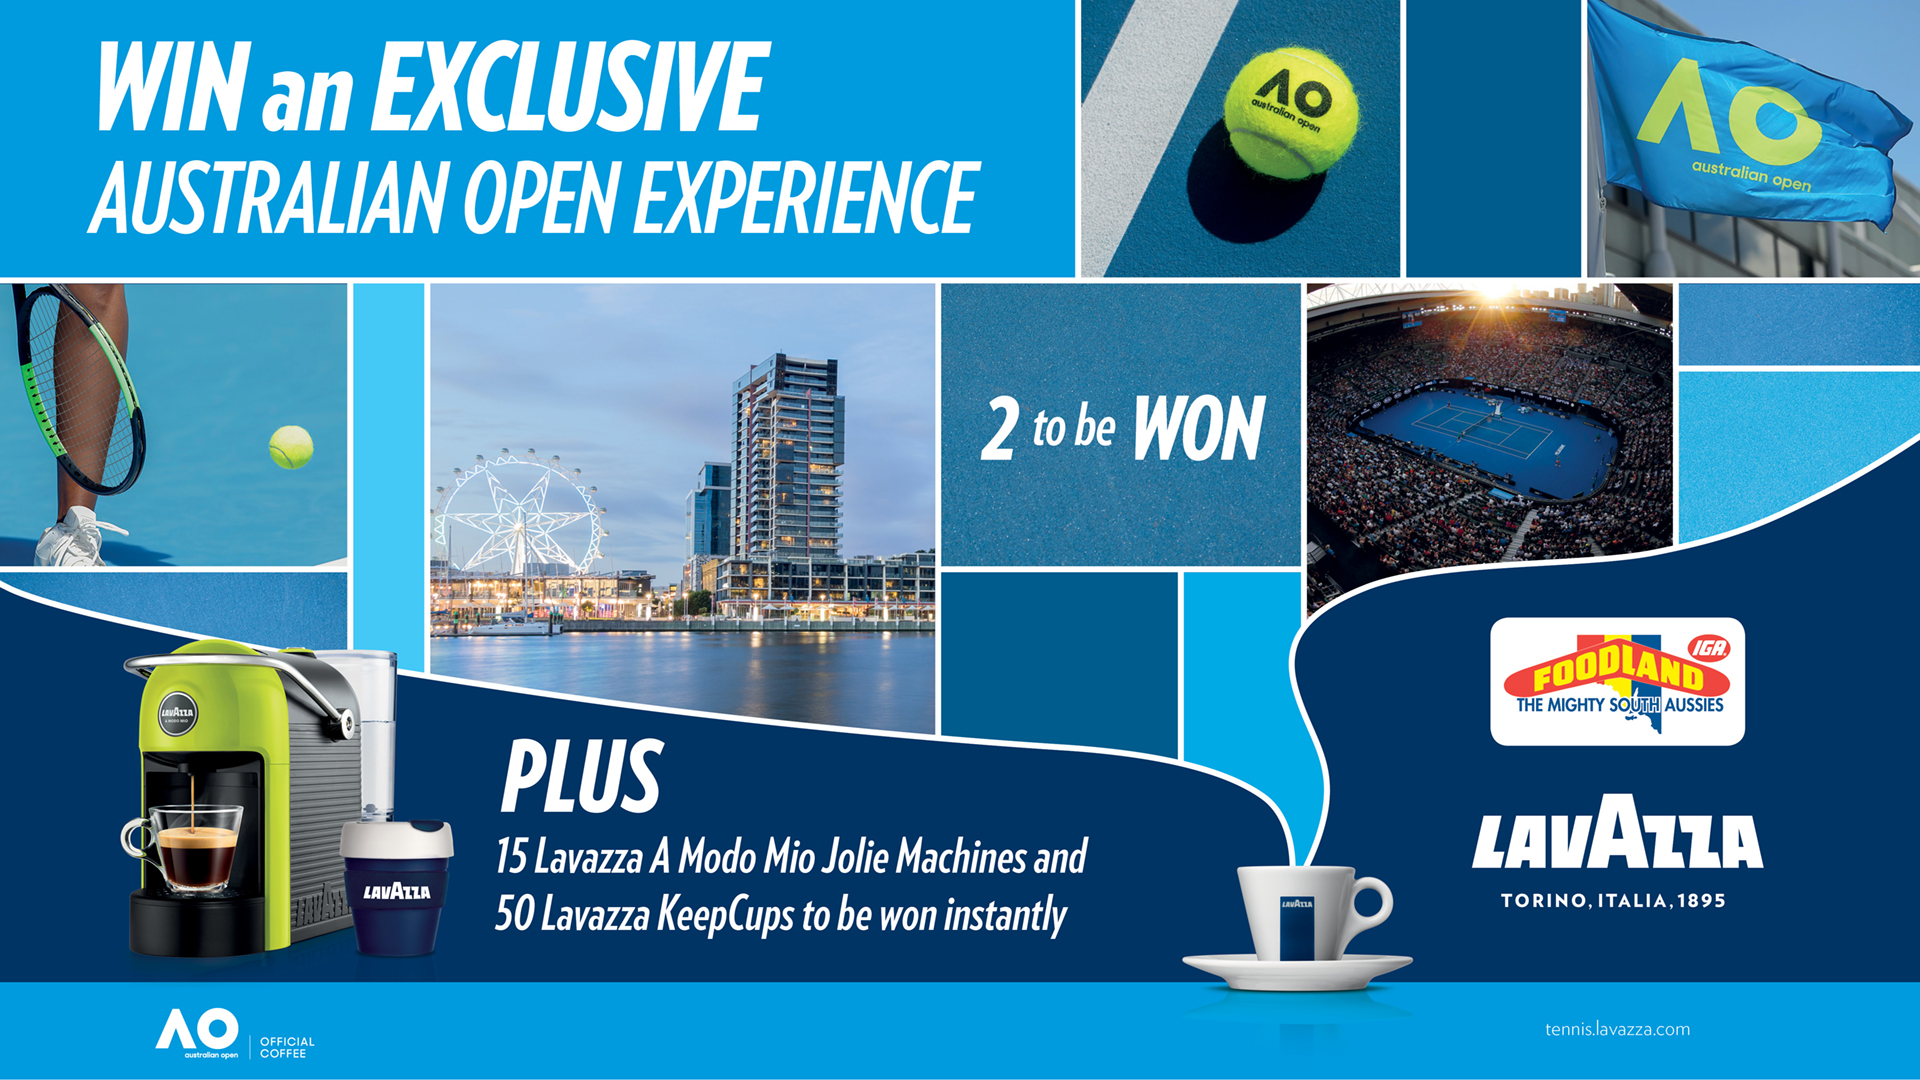 WIN an Australian Open Finals Experience! PLUS a Jolie and Milk Up A Modo Mio Coffee Machine to be won each week.